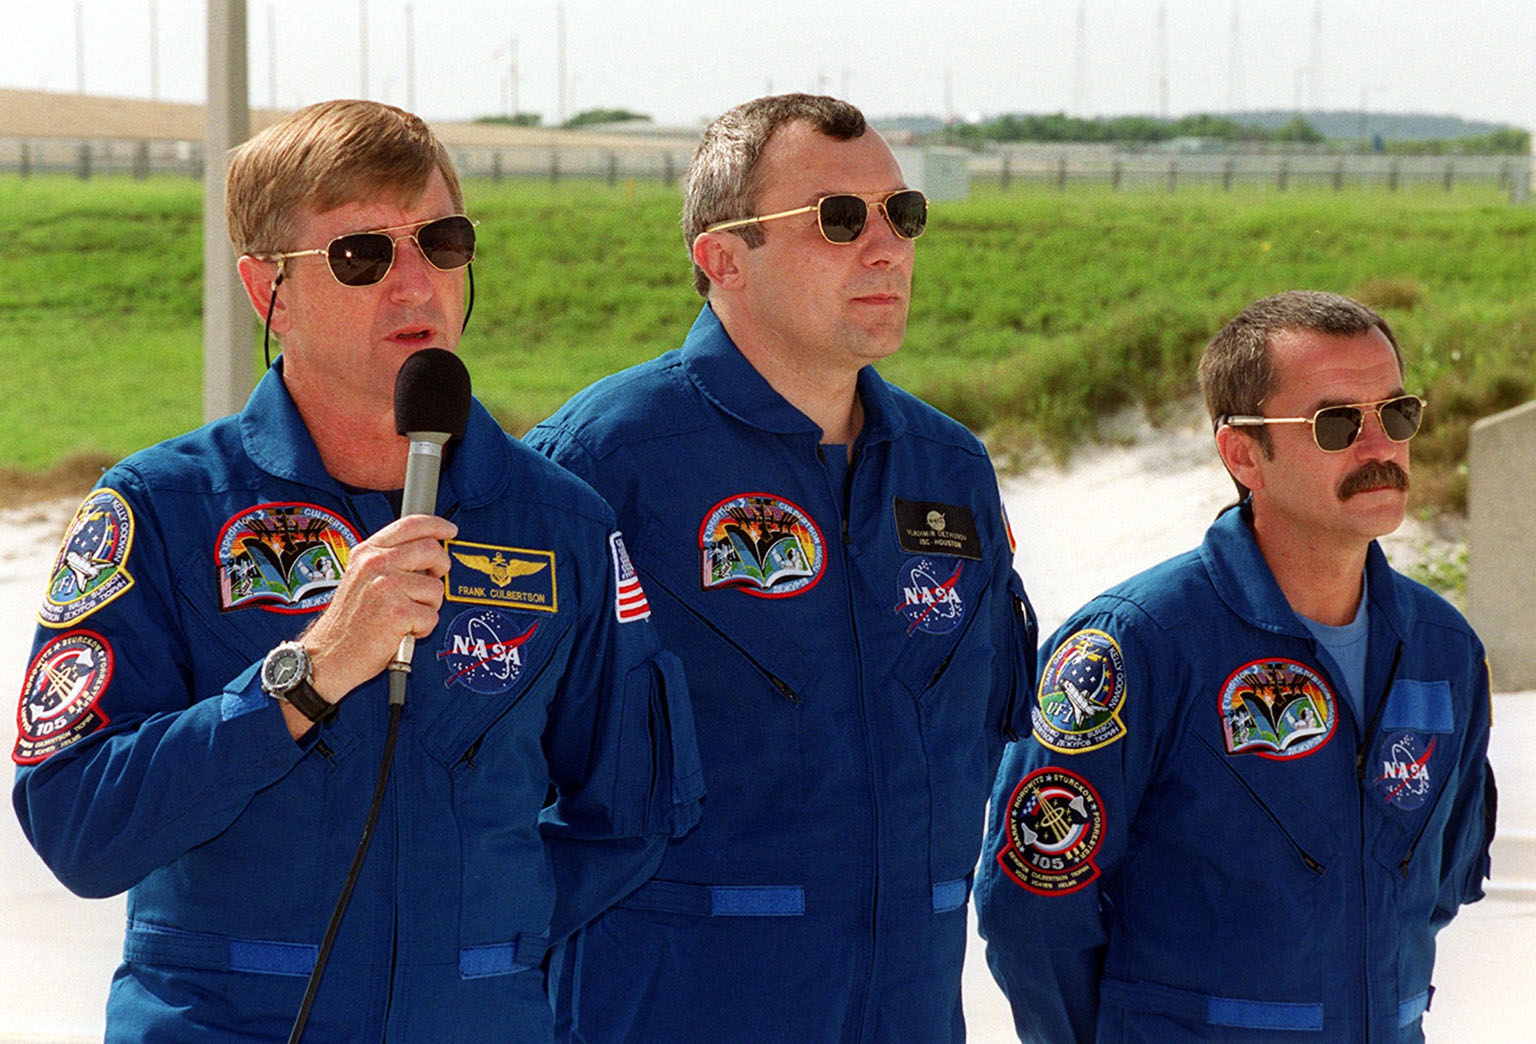 KENNEDY SPACE CENTER, Fla. -- At the slidewire landing site, Launch Pad 39A, Expedition Three Commander Frank Culbertson responds to a question during a media interview. With him are cosmonauts Vladimir Nikolaevich Dezhurov (center) and Mikhail Tyurin (right), who are with the Russian Aviation and Space Agency. They and the STS-105 crew are at KSC to take part in Terminal Countdown Demonstration Test activities, which include emergency egress, a simulated launch countdown and familiarization with the payload. Mission STS-105 will be transporting the Expedition Three crew, several payloads and scientific experiments to the International Space Station aboard Discovery. The current Expedition Two crew members on the Station will return to Earth on Discovery. Launch of Discovery is scheduled no earlier than Aug. 9, 2001